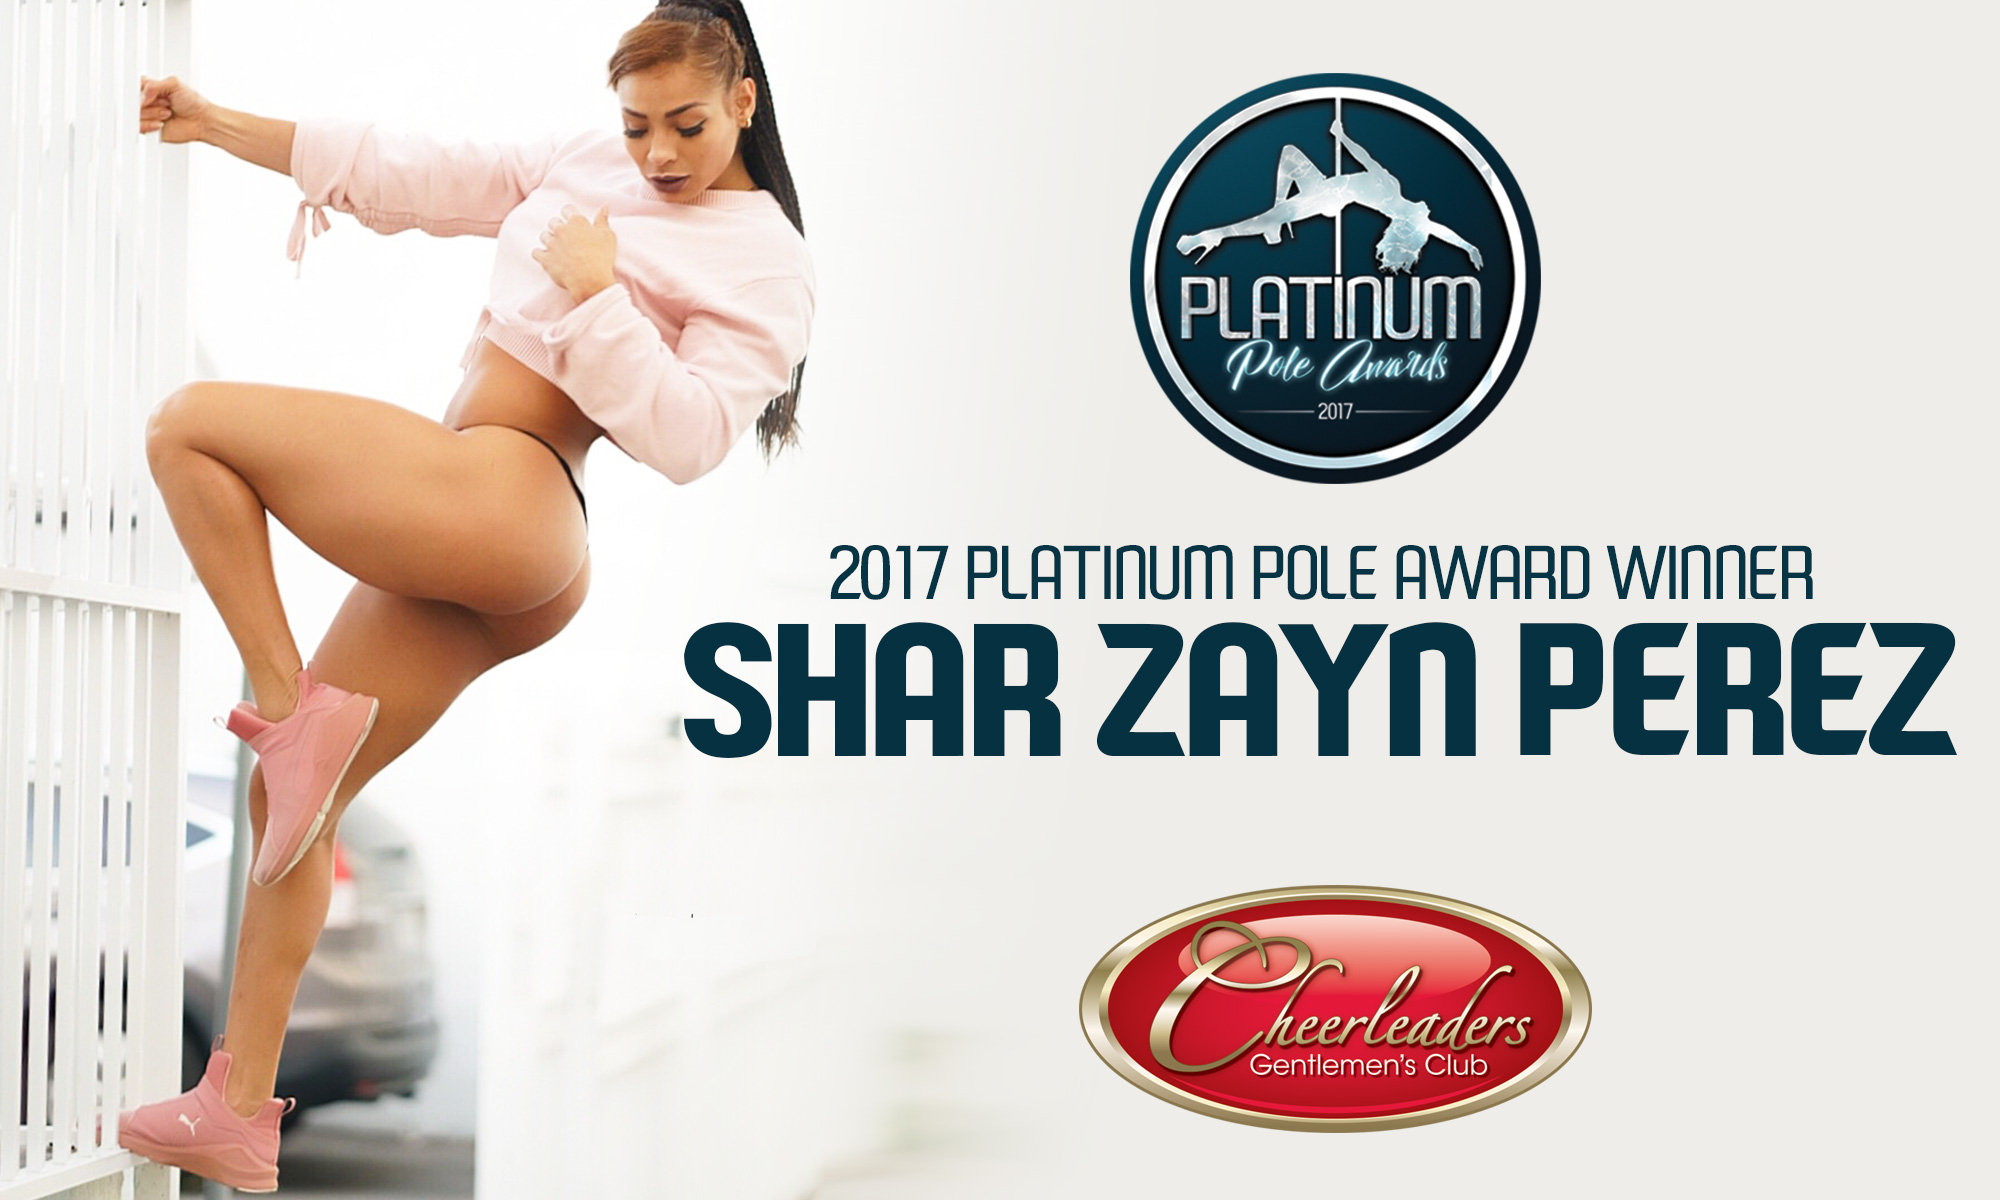 Shar Zayn Perez - Cheerleaders Philadelphia